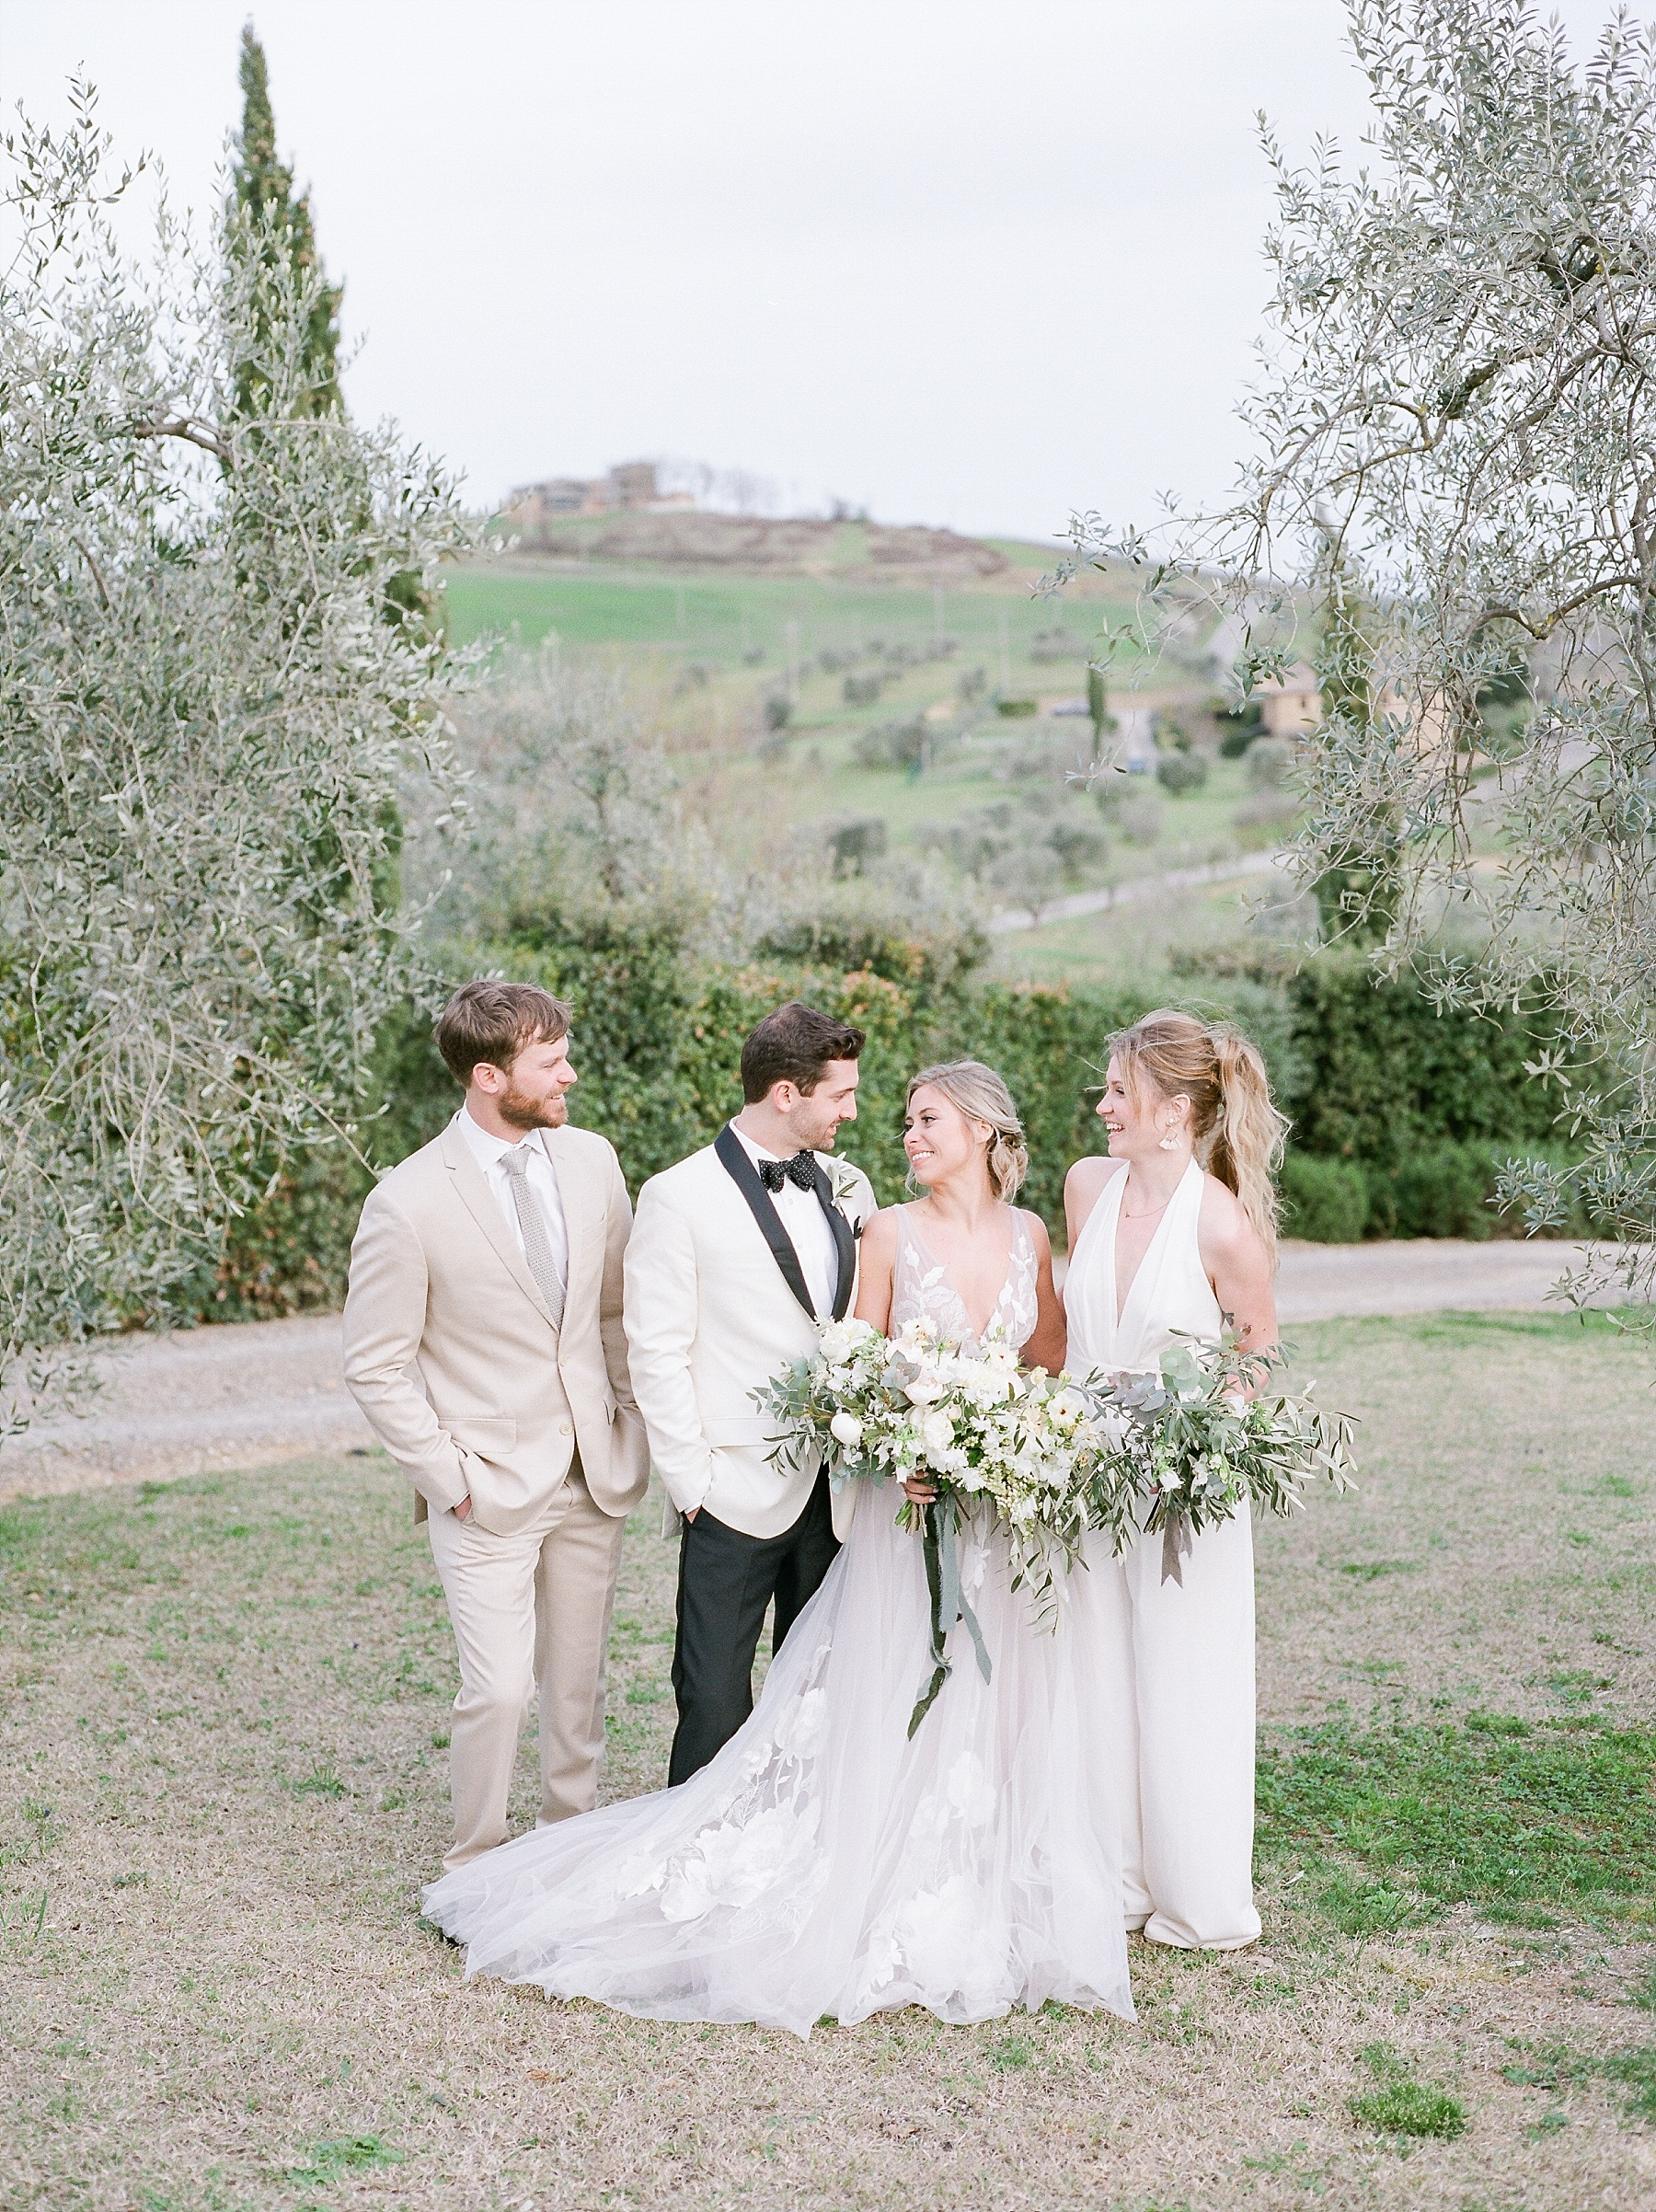 All White Destination Wedding in the Hills of Tuscany Italy at Estate Borgo Petrognano by Kelsi Kliethermes Photography_0054.jpg